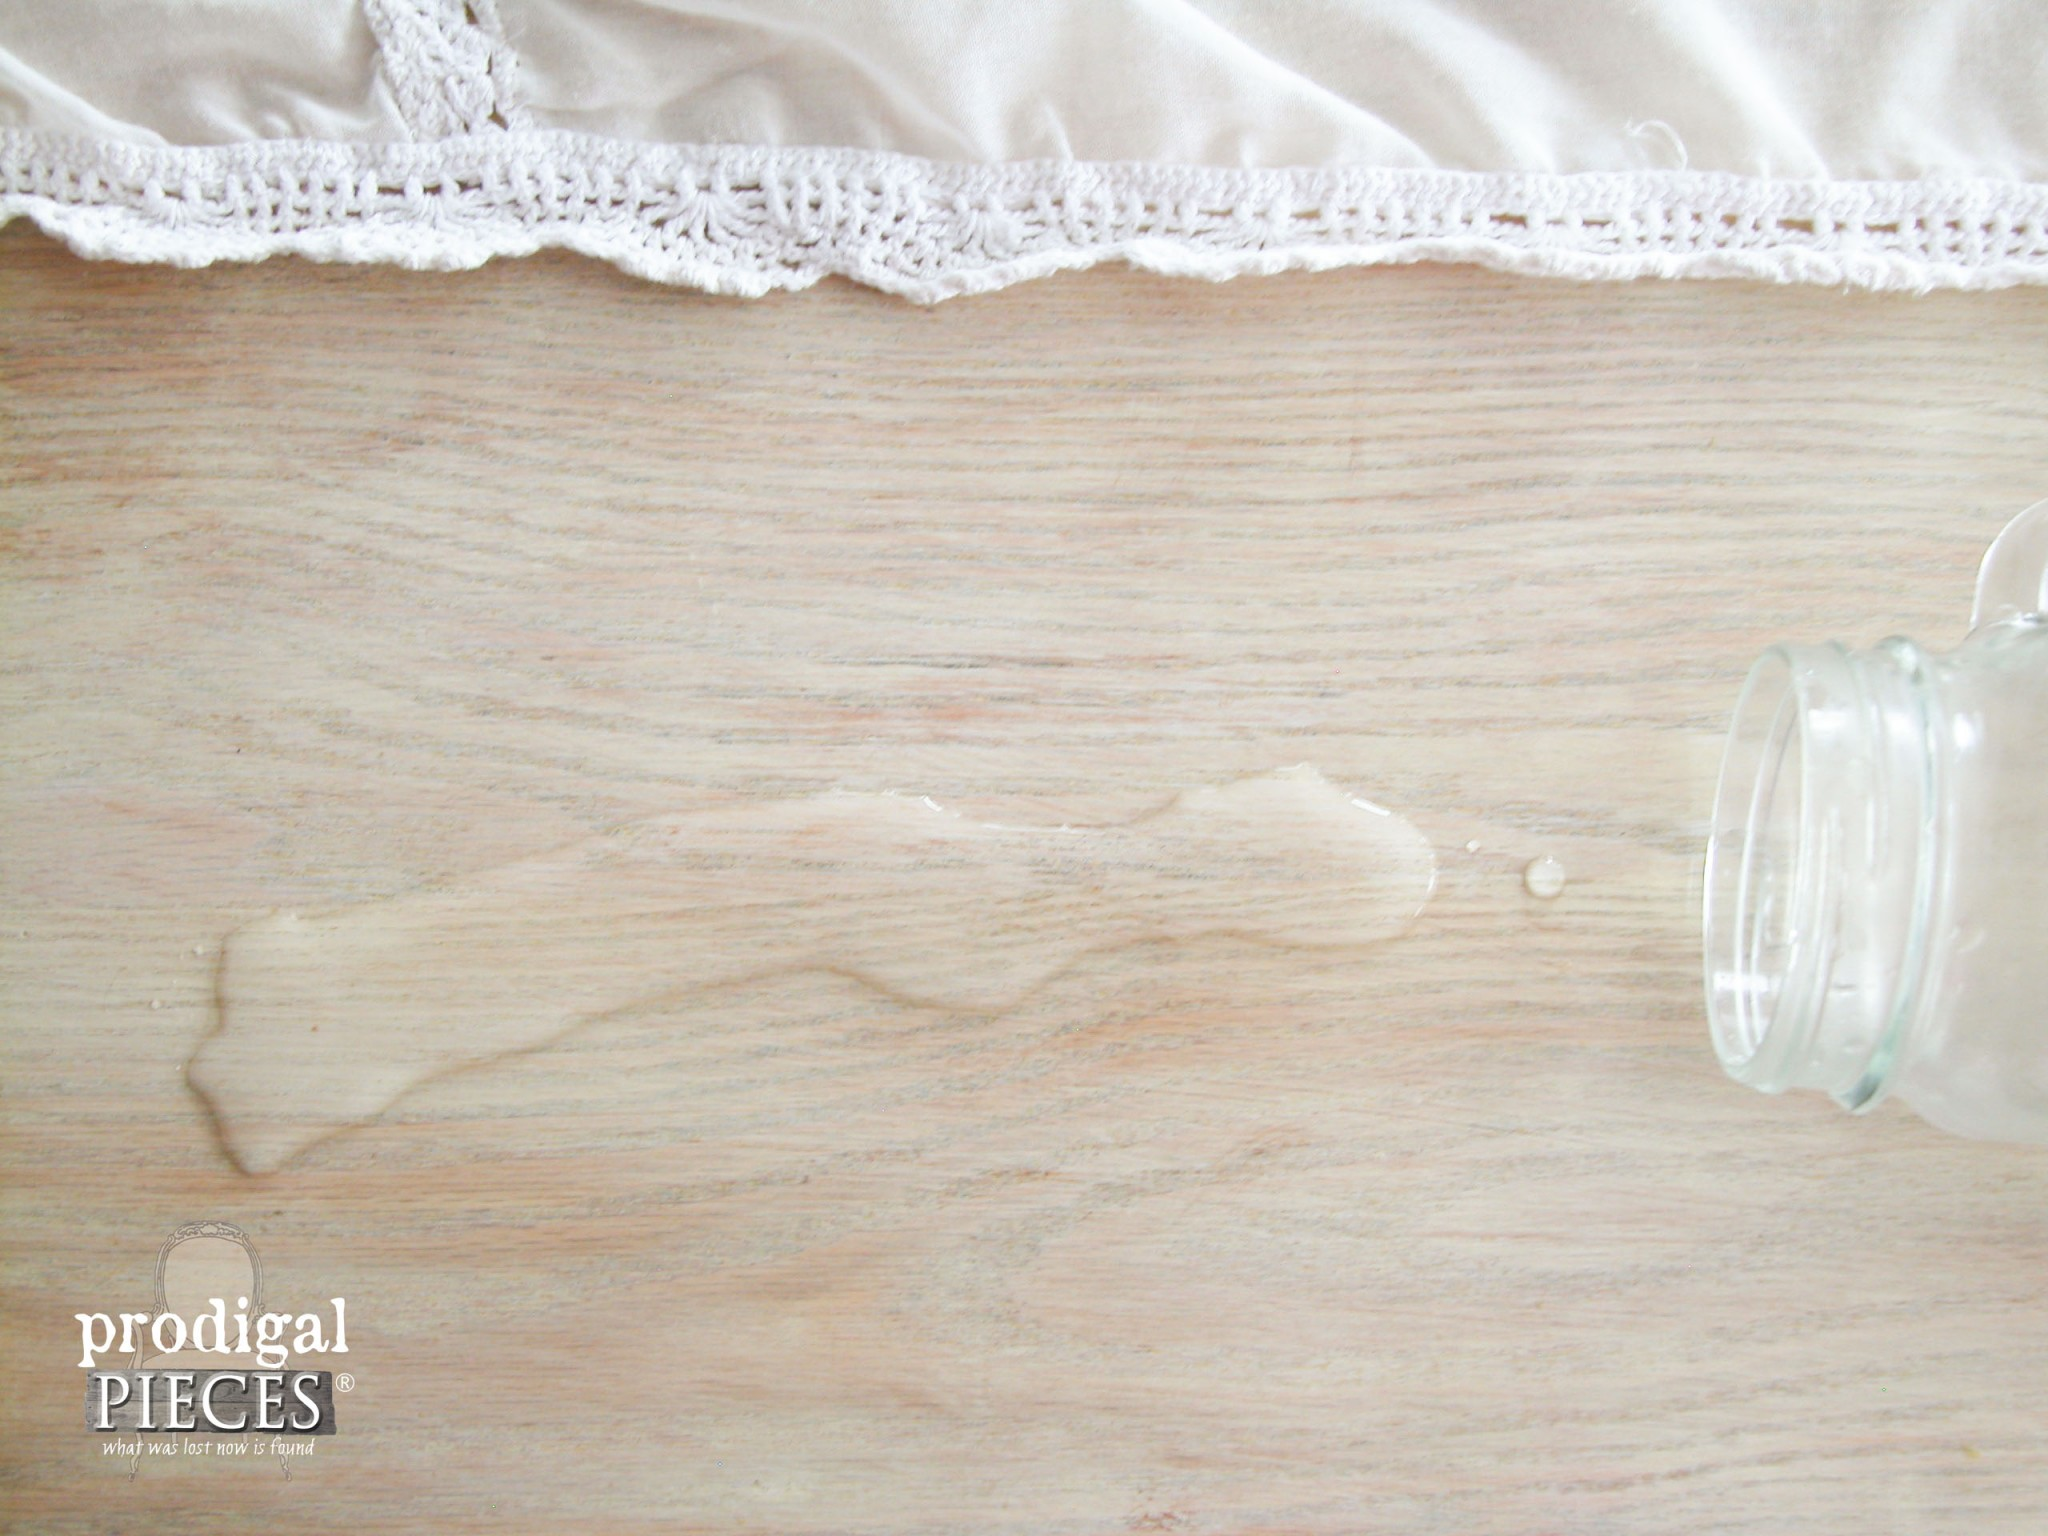 Water beading on Waterlox Farmhouse Table by Prodigal Pieces | www.prodigalpieces.com